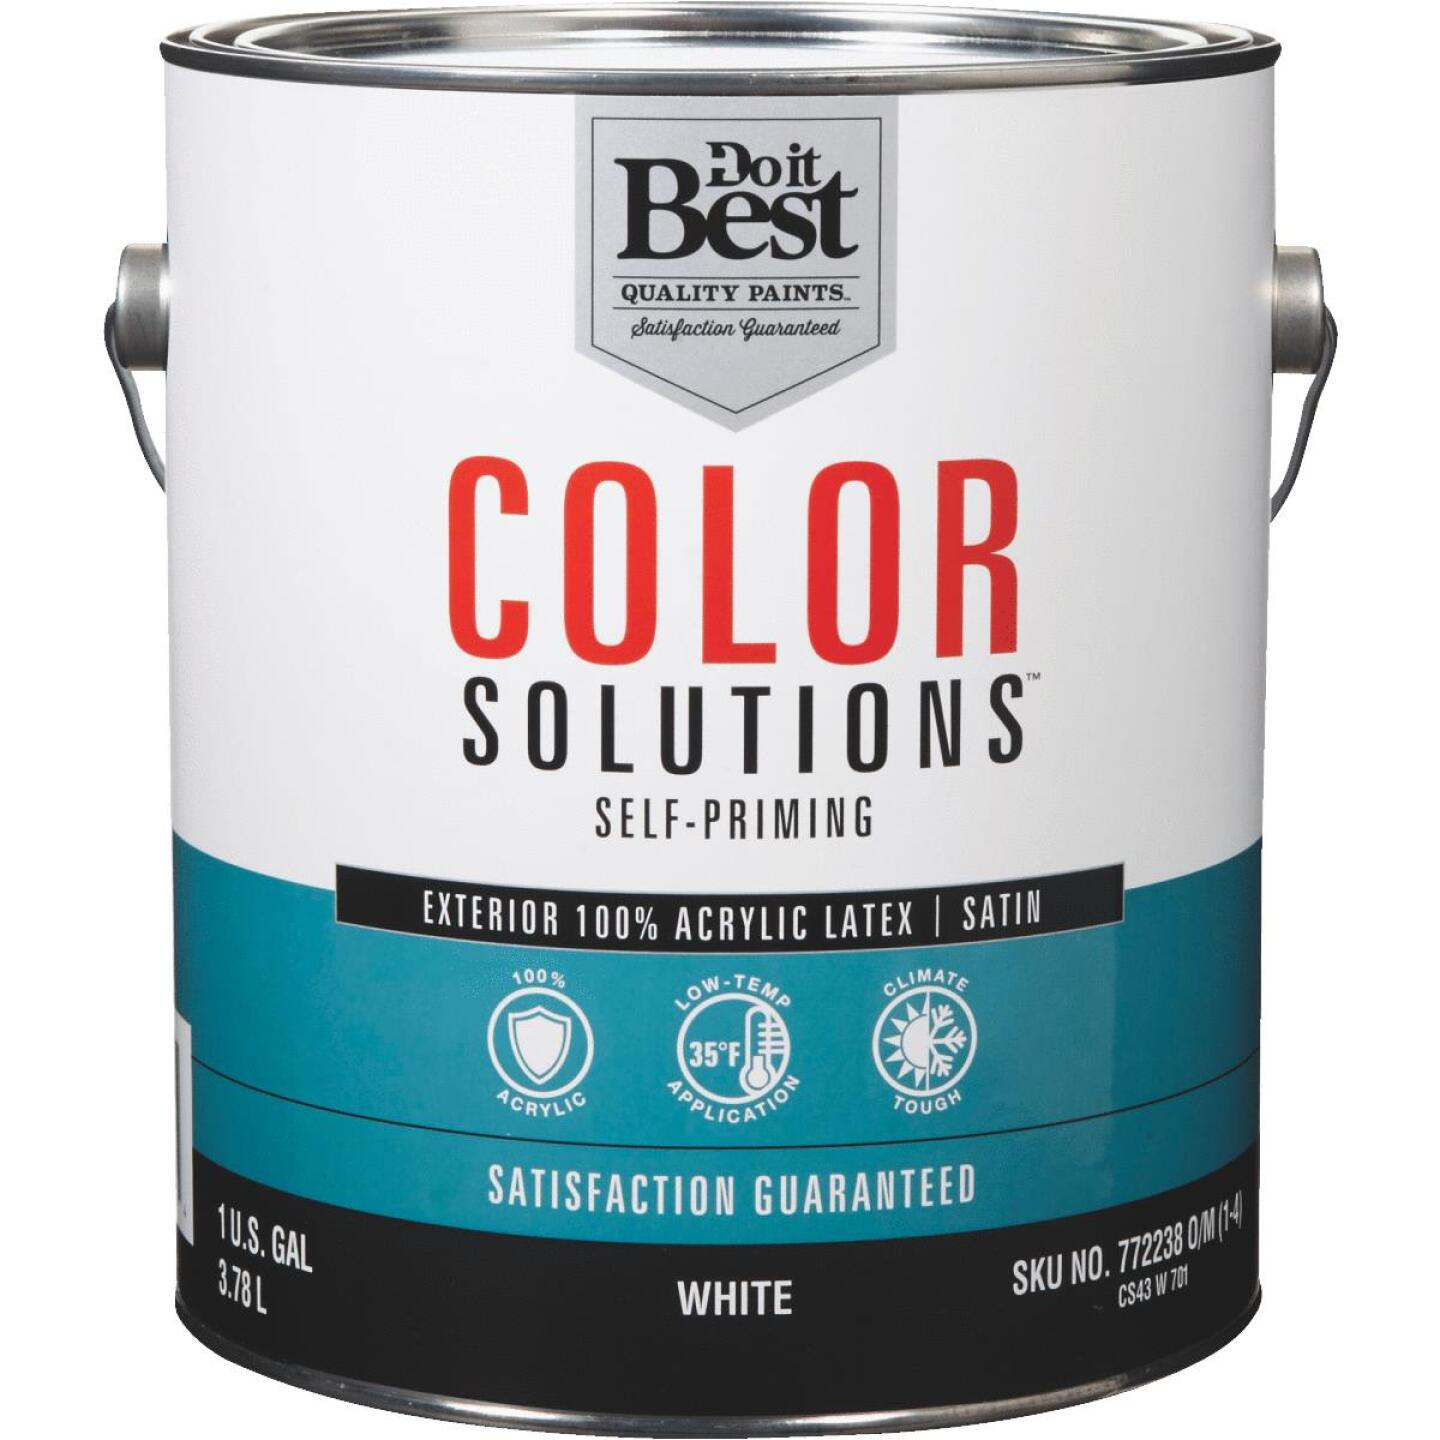 Do it Best Color Solutions 100% Acrylic Latex Self-Priming Satin Exterior House Paint, White, 1 Gal. Image 1